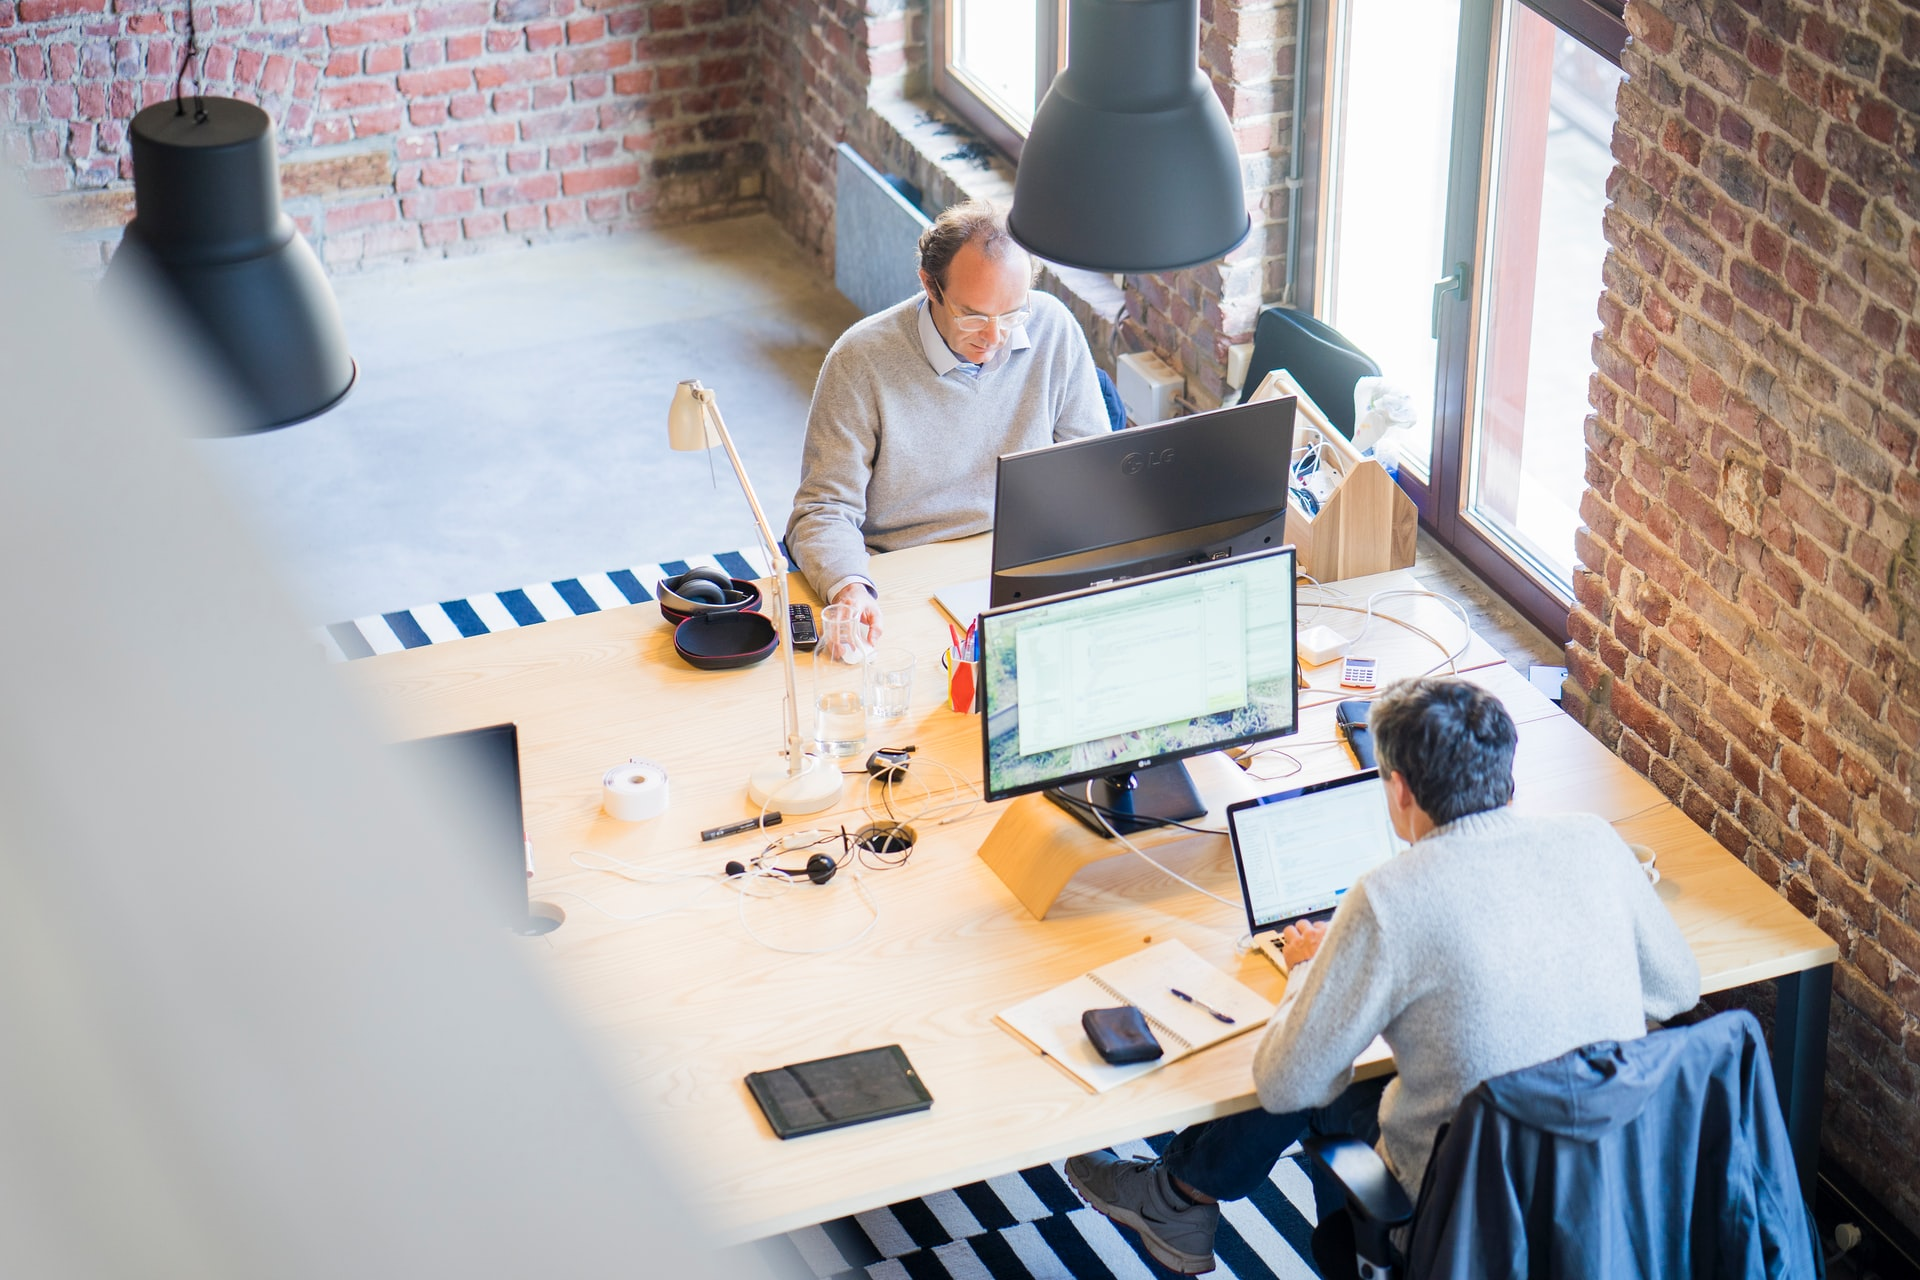 How To Make the Most Out of Your Open-Plan Office